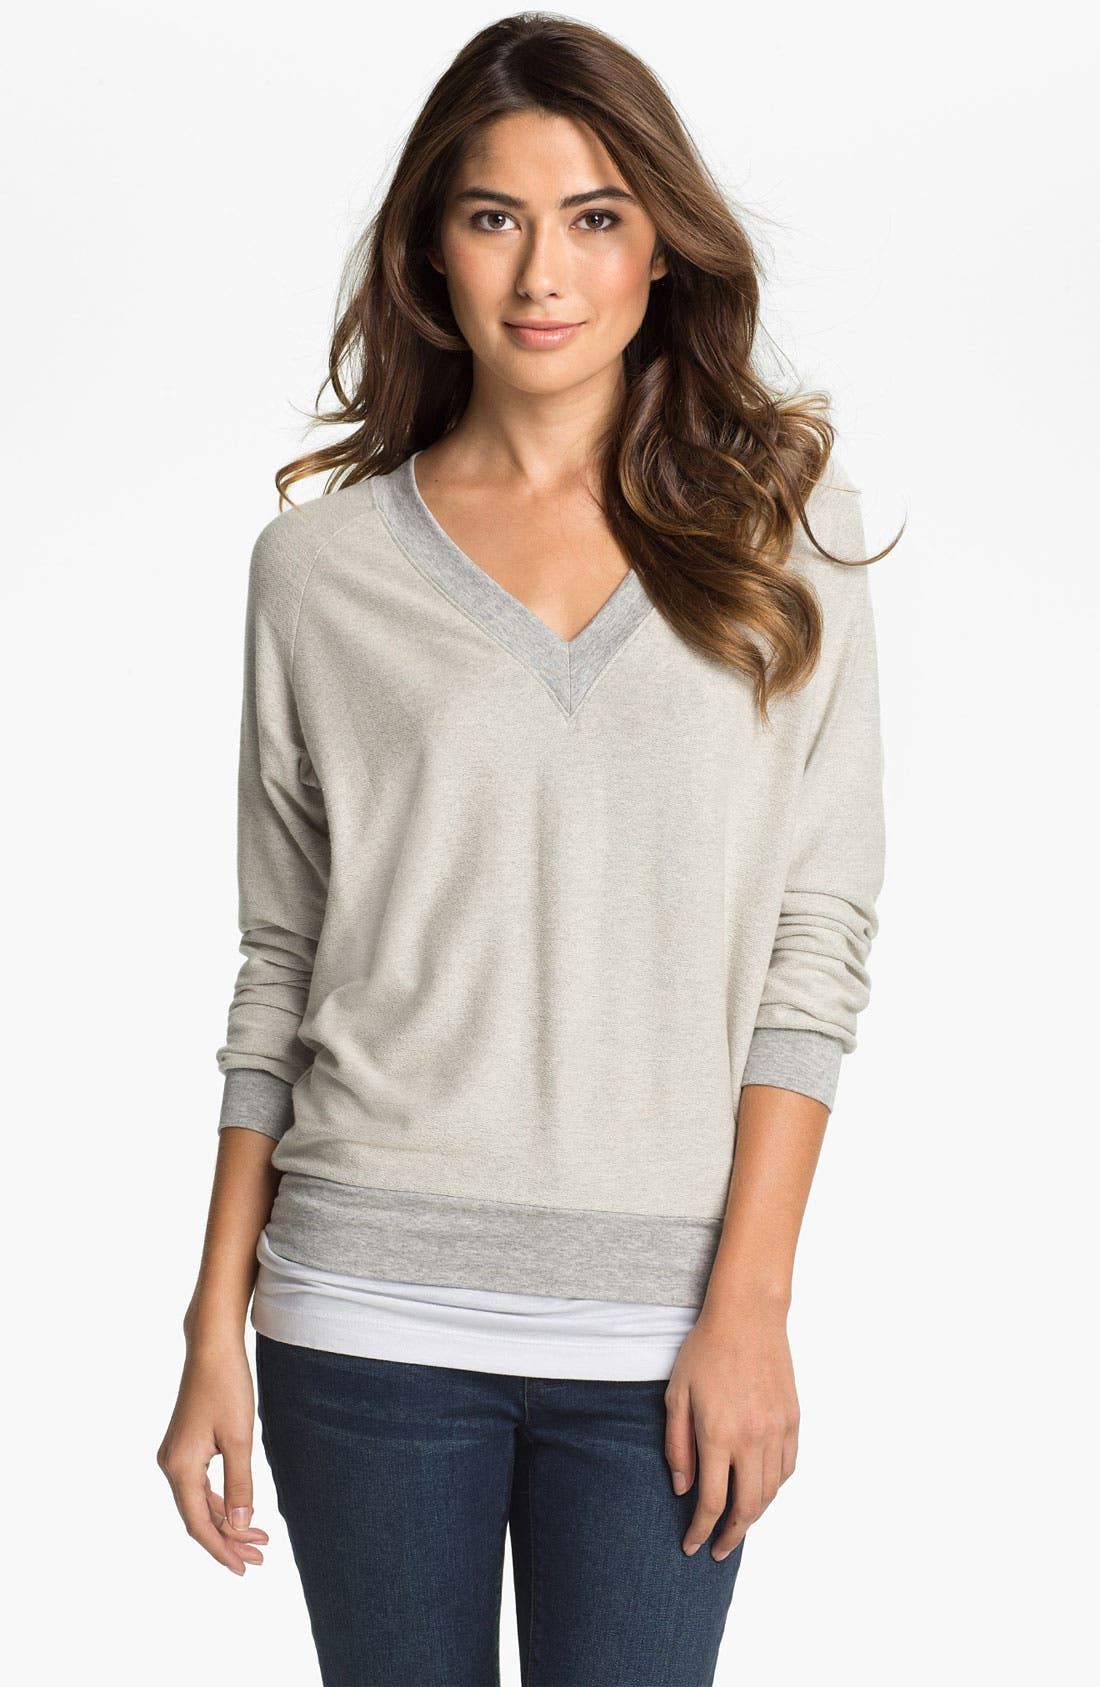 Main Image - Cielo 'Inside Out' V-Neck Sweatshirt